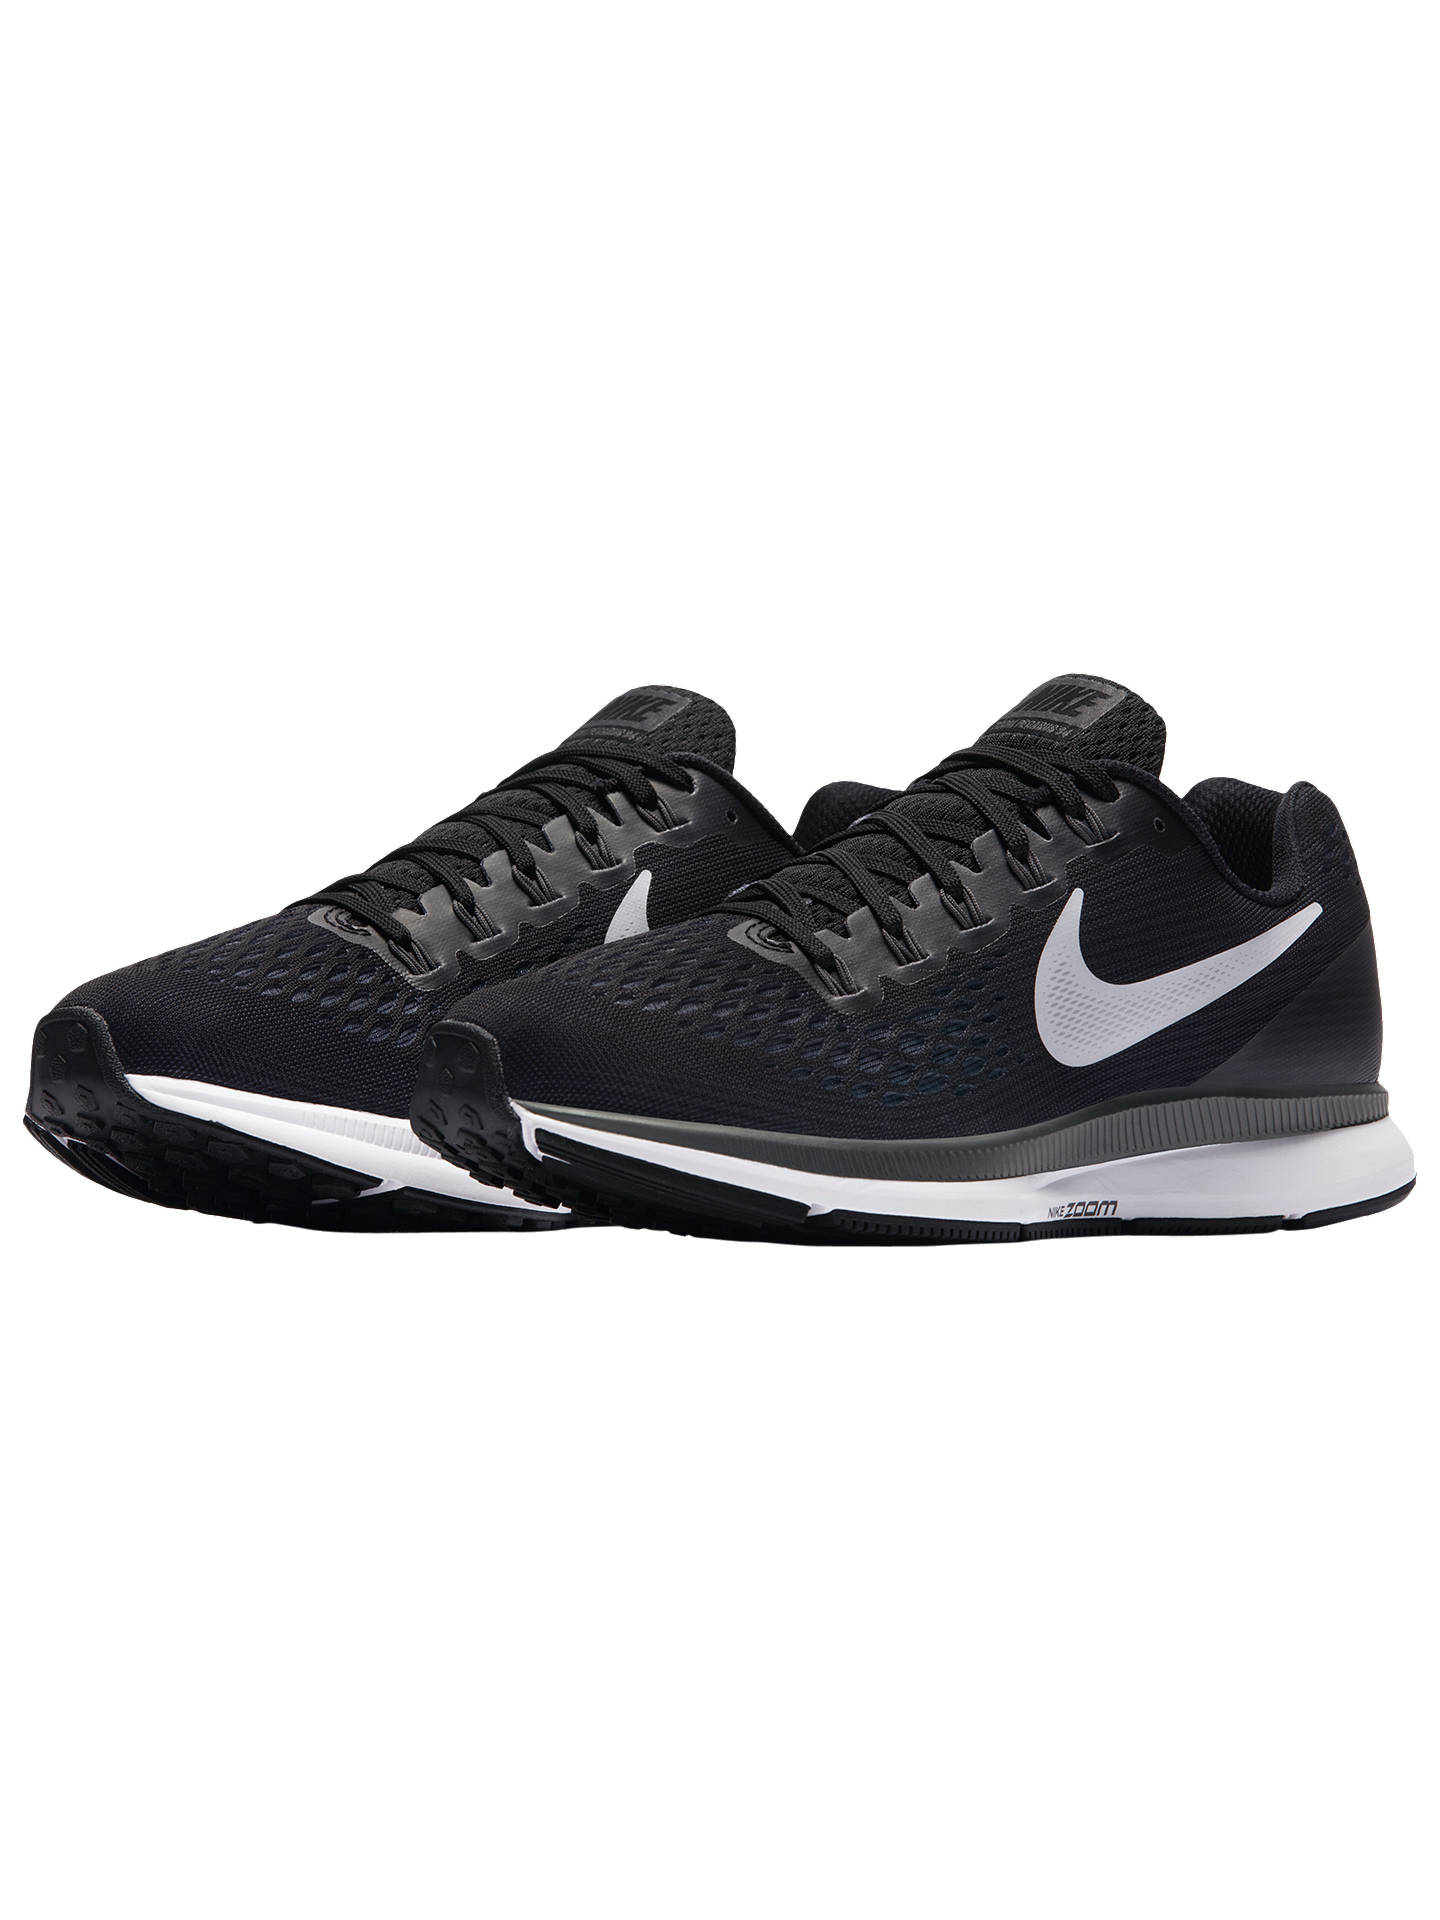 best sneakers f8242 869f0 ... Buy Nike Air Zoom Pegasus 34 Women s Running Shoes, Black White Grey,  ...